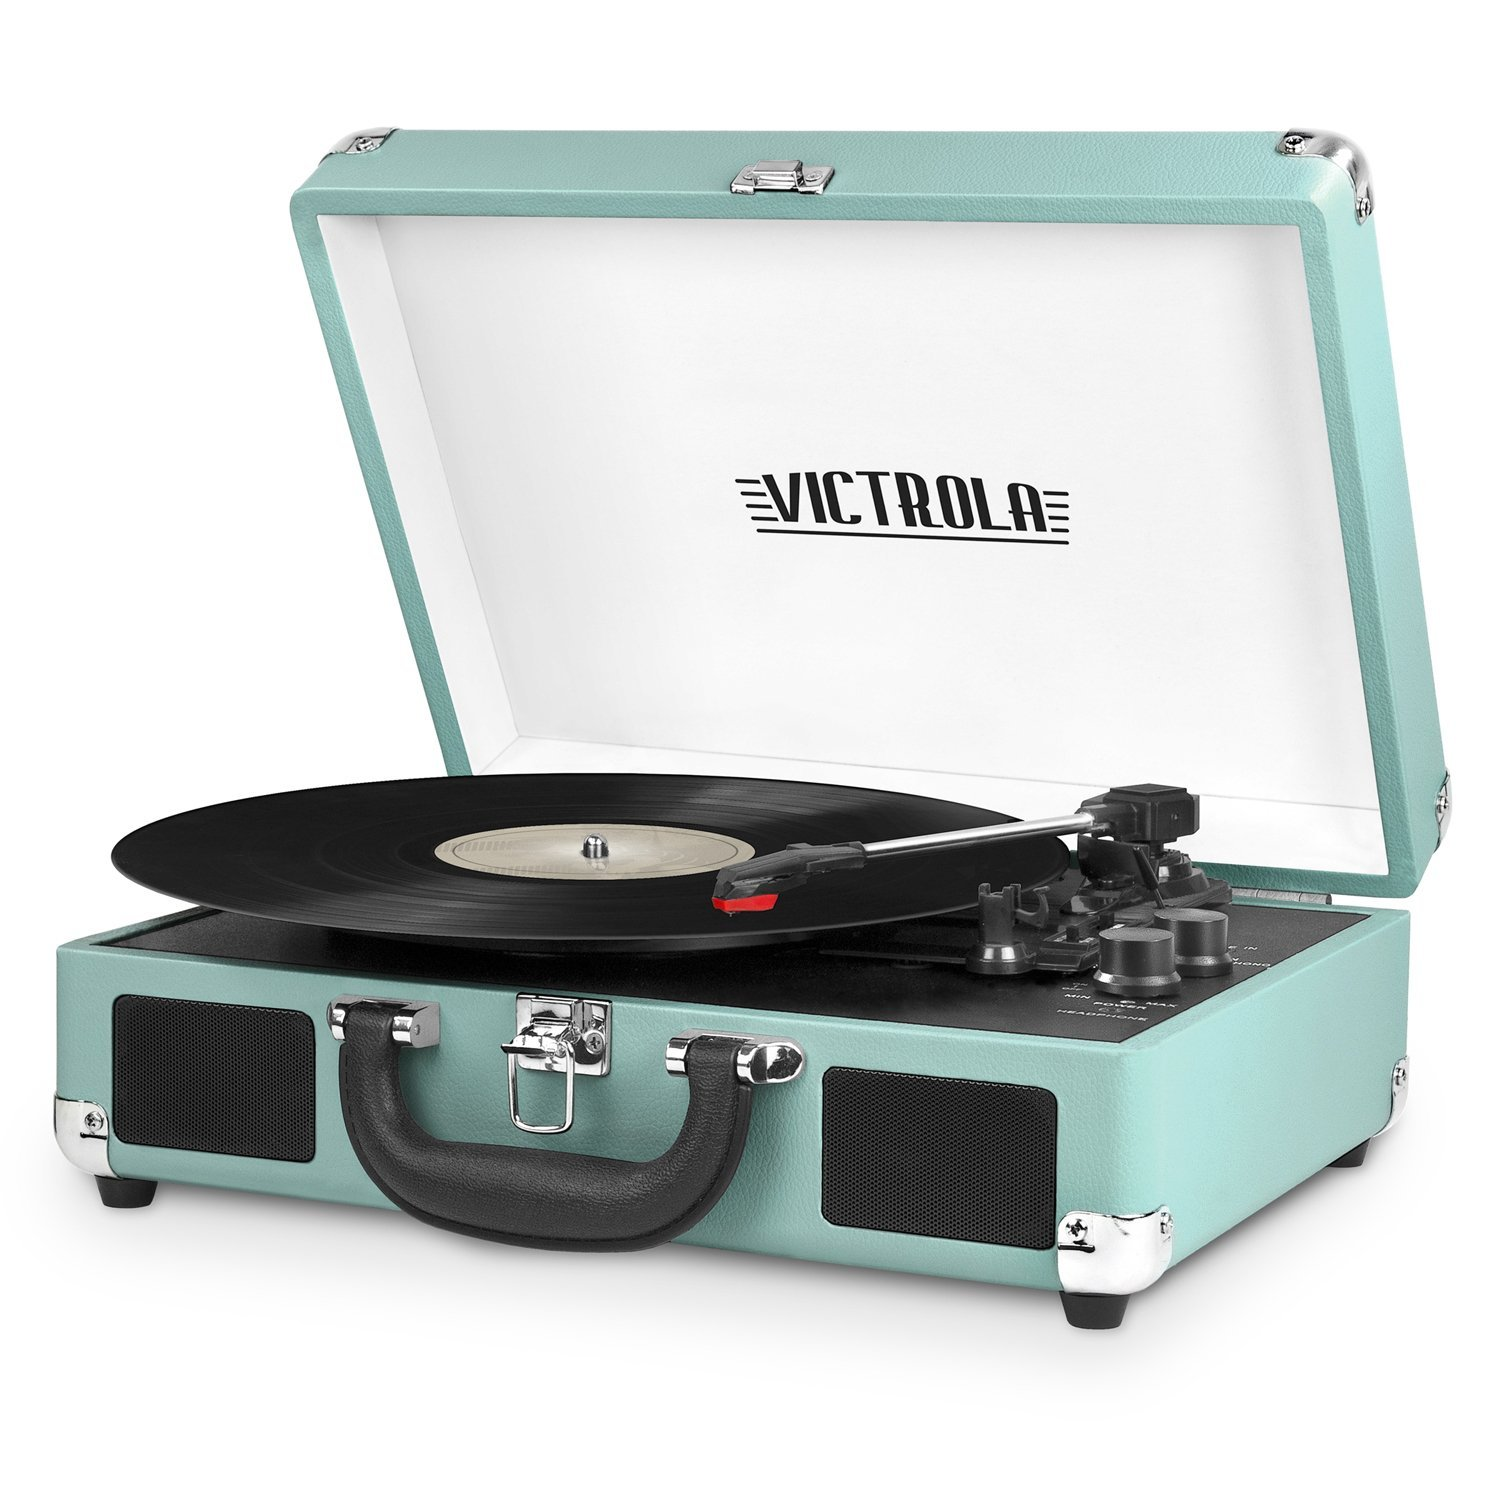 Victrola Vintage Turntable Black Friday & Cyber Monday deals